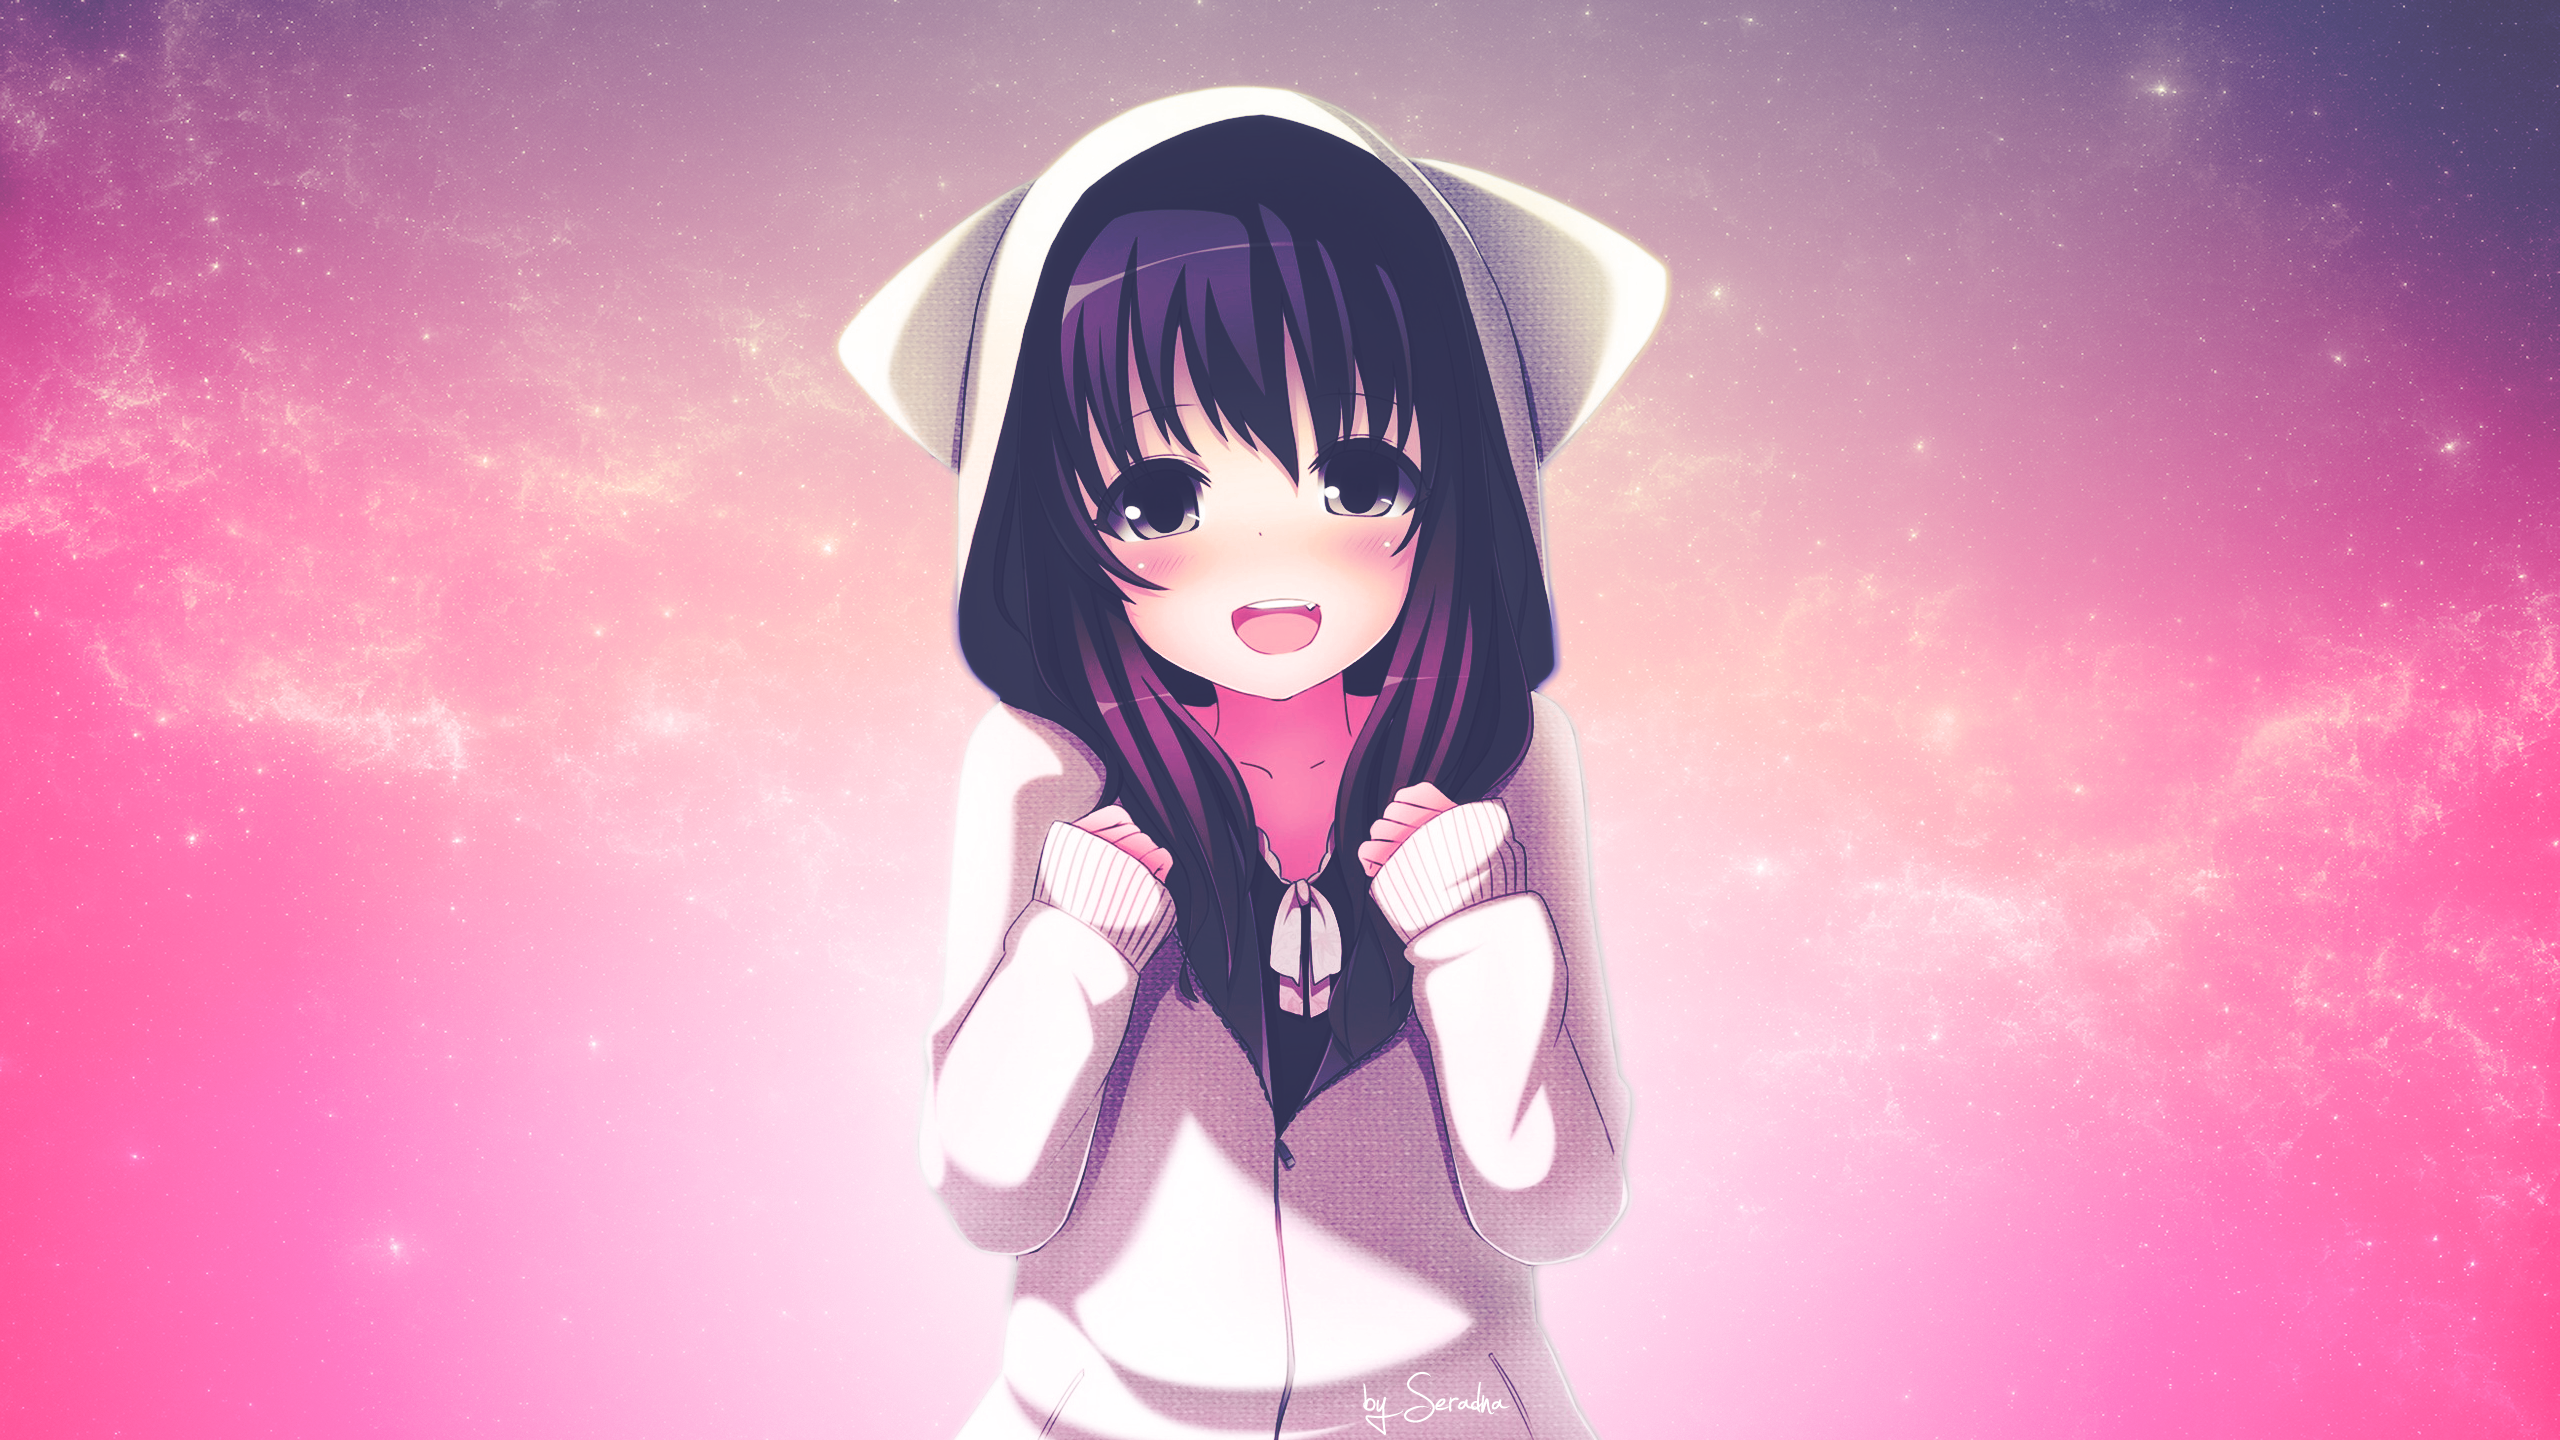 neko girl cute art beautiful pictures anime funny 2560x1454